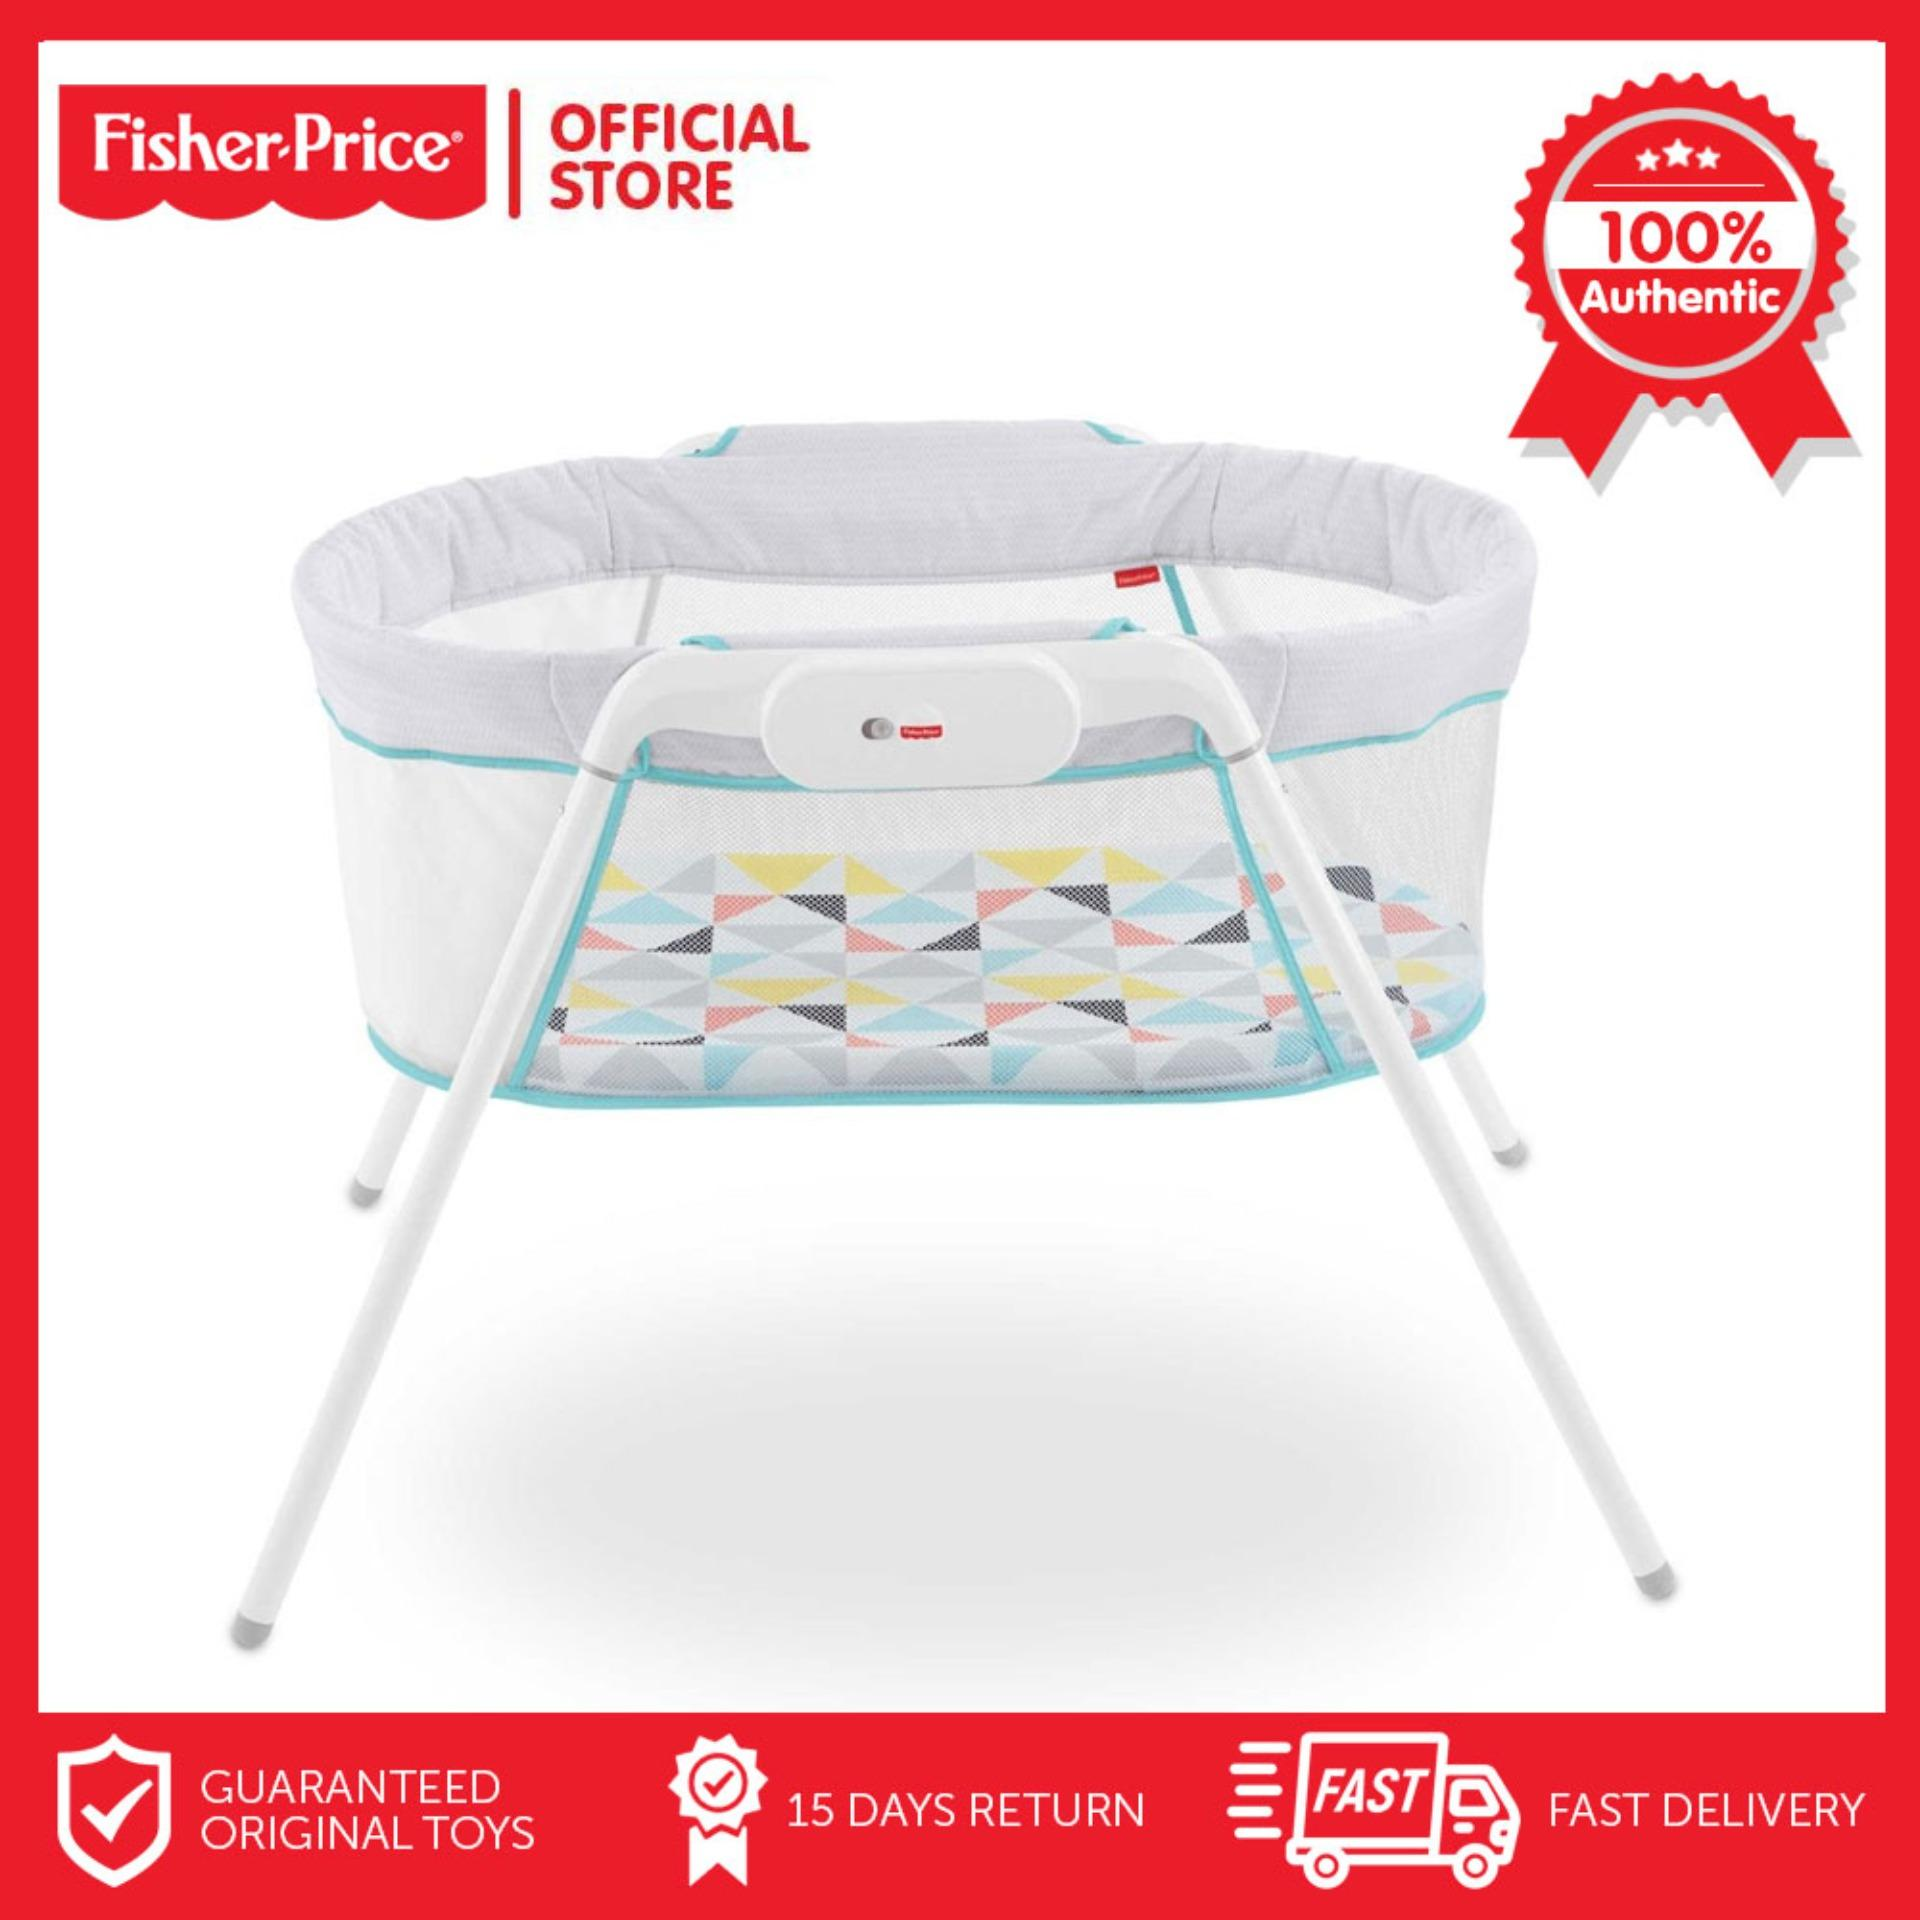 Fisher Price Stow N Go Bassinet Cosleeper Crib By Fisher-Price Official Store.